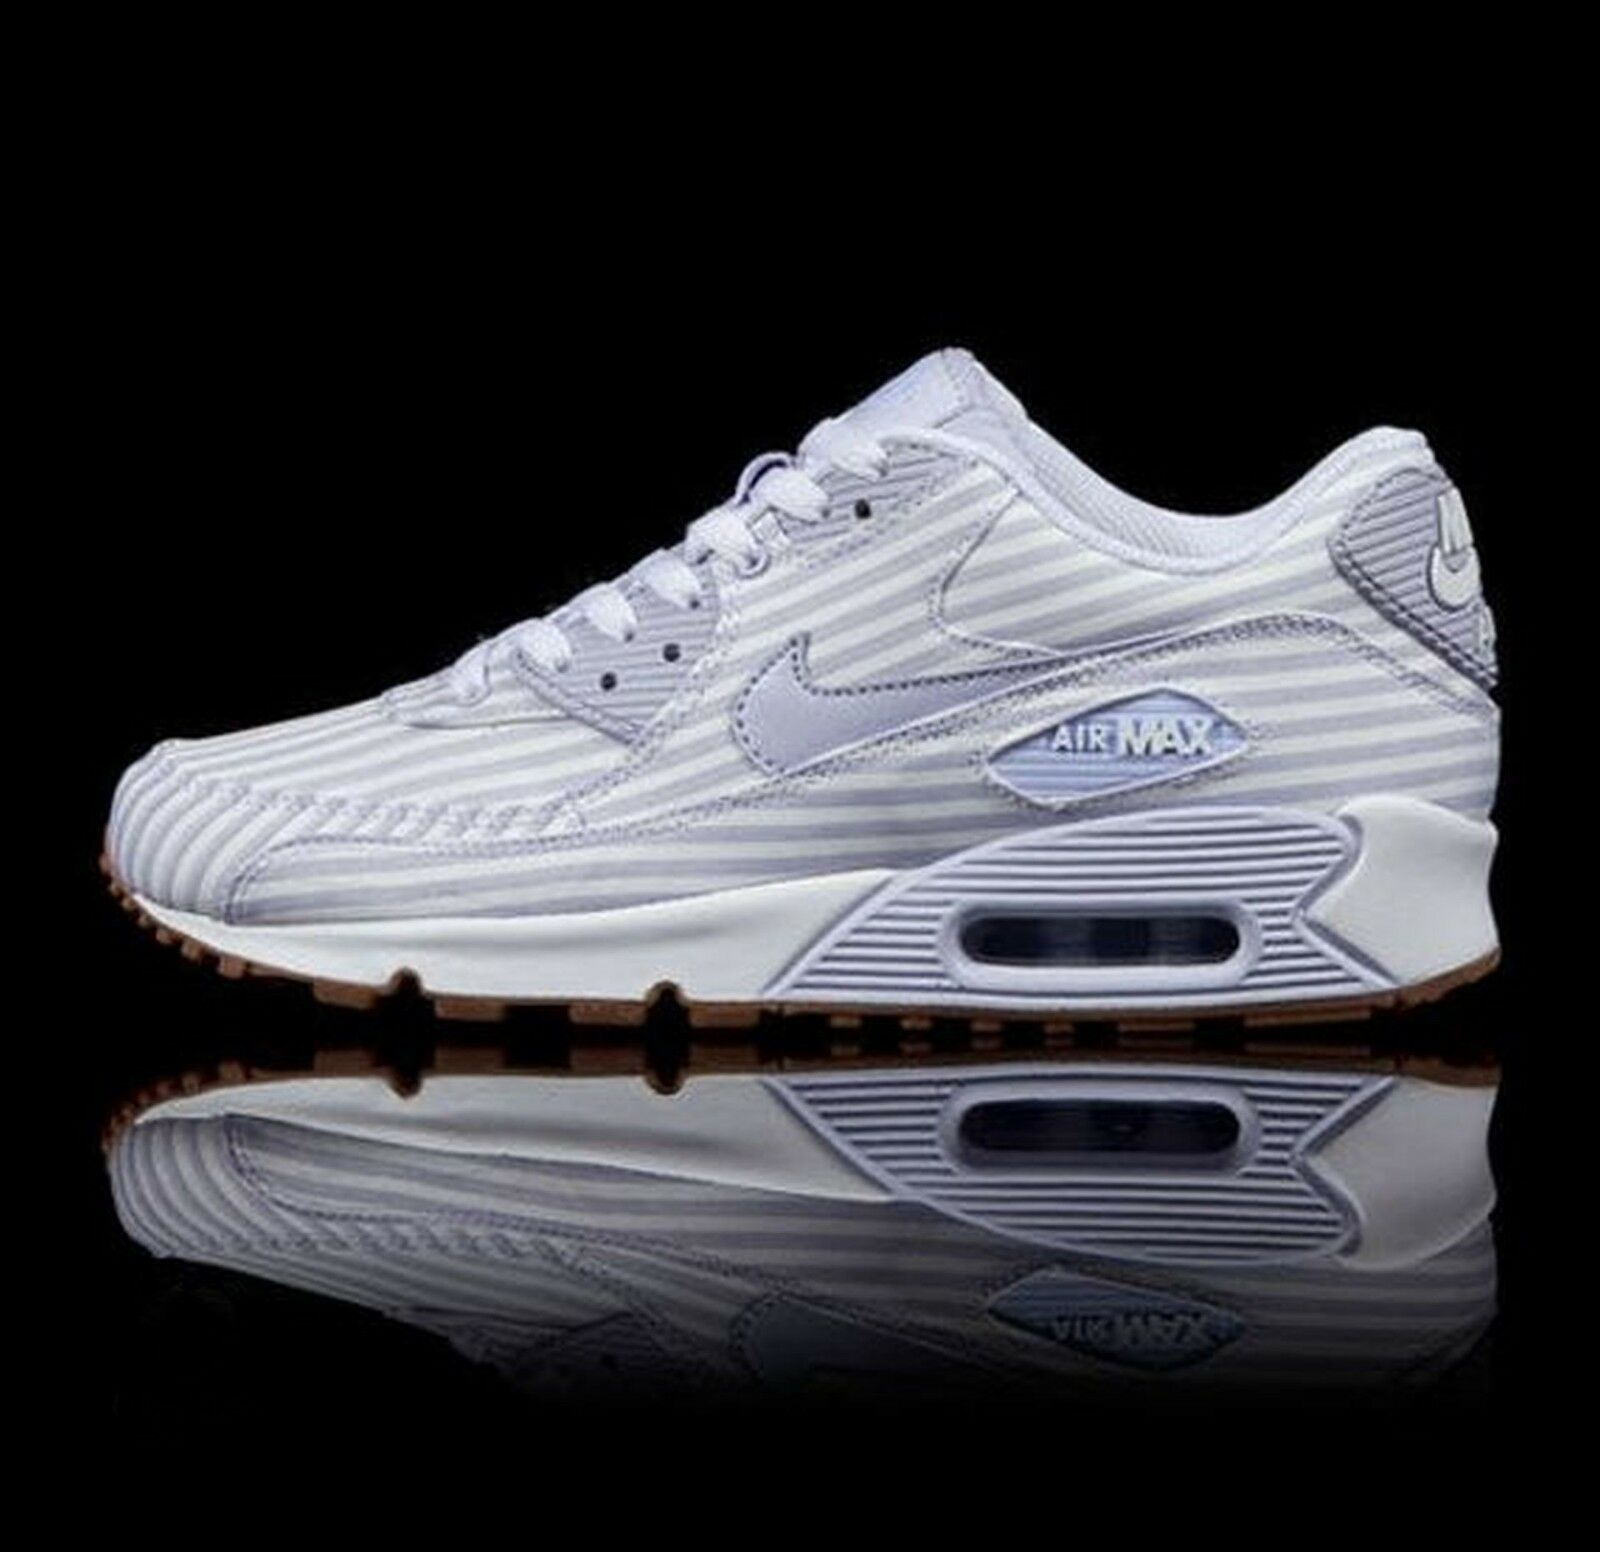 Nike Air Max 90 Palest Purple  White-Gum Light Brown 325213-503 Wmn Sz 7.5